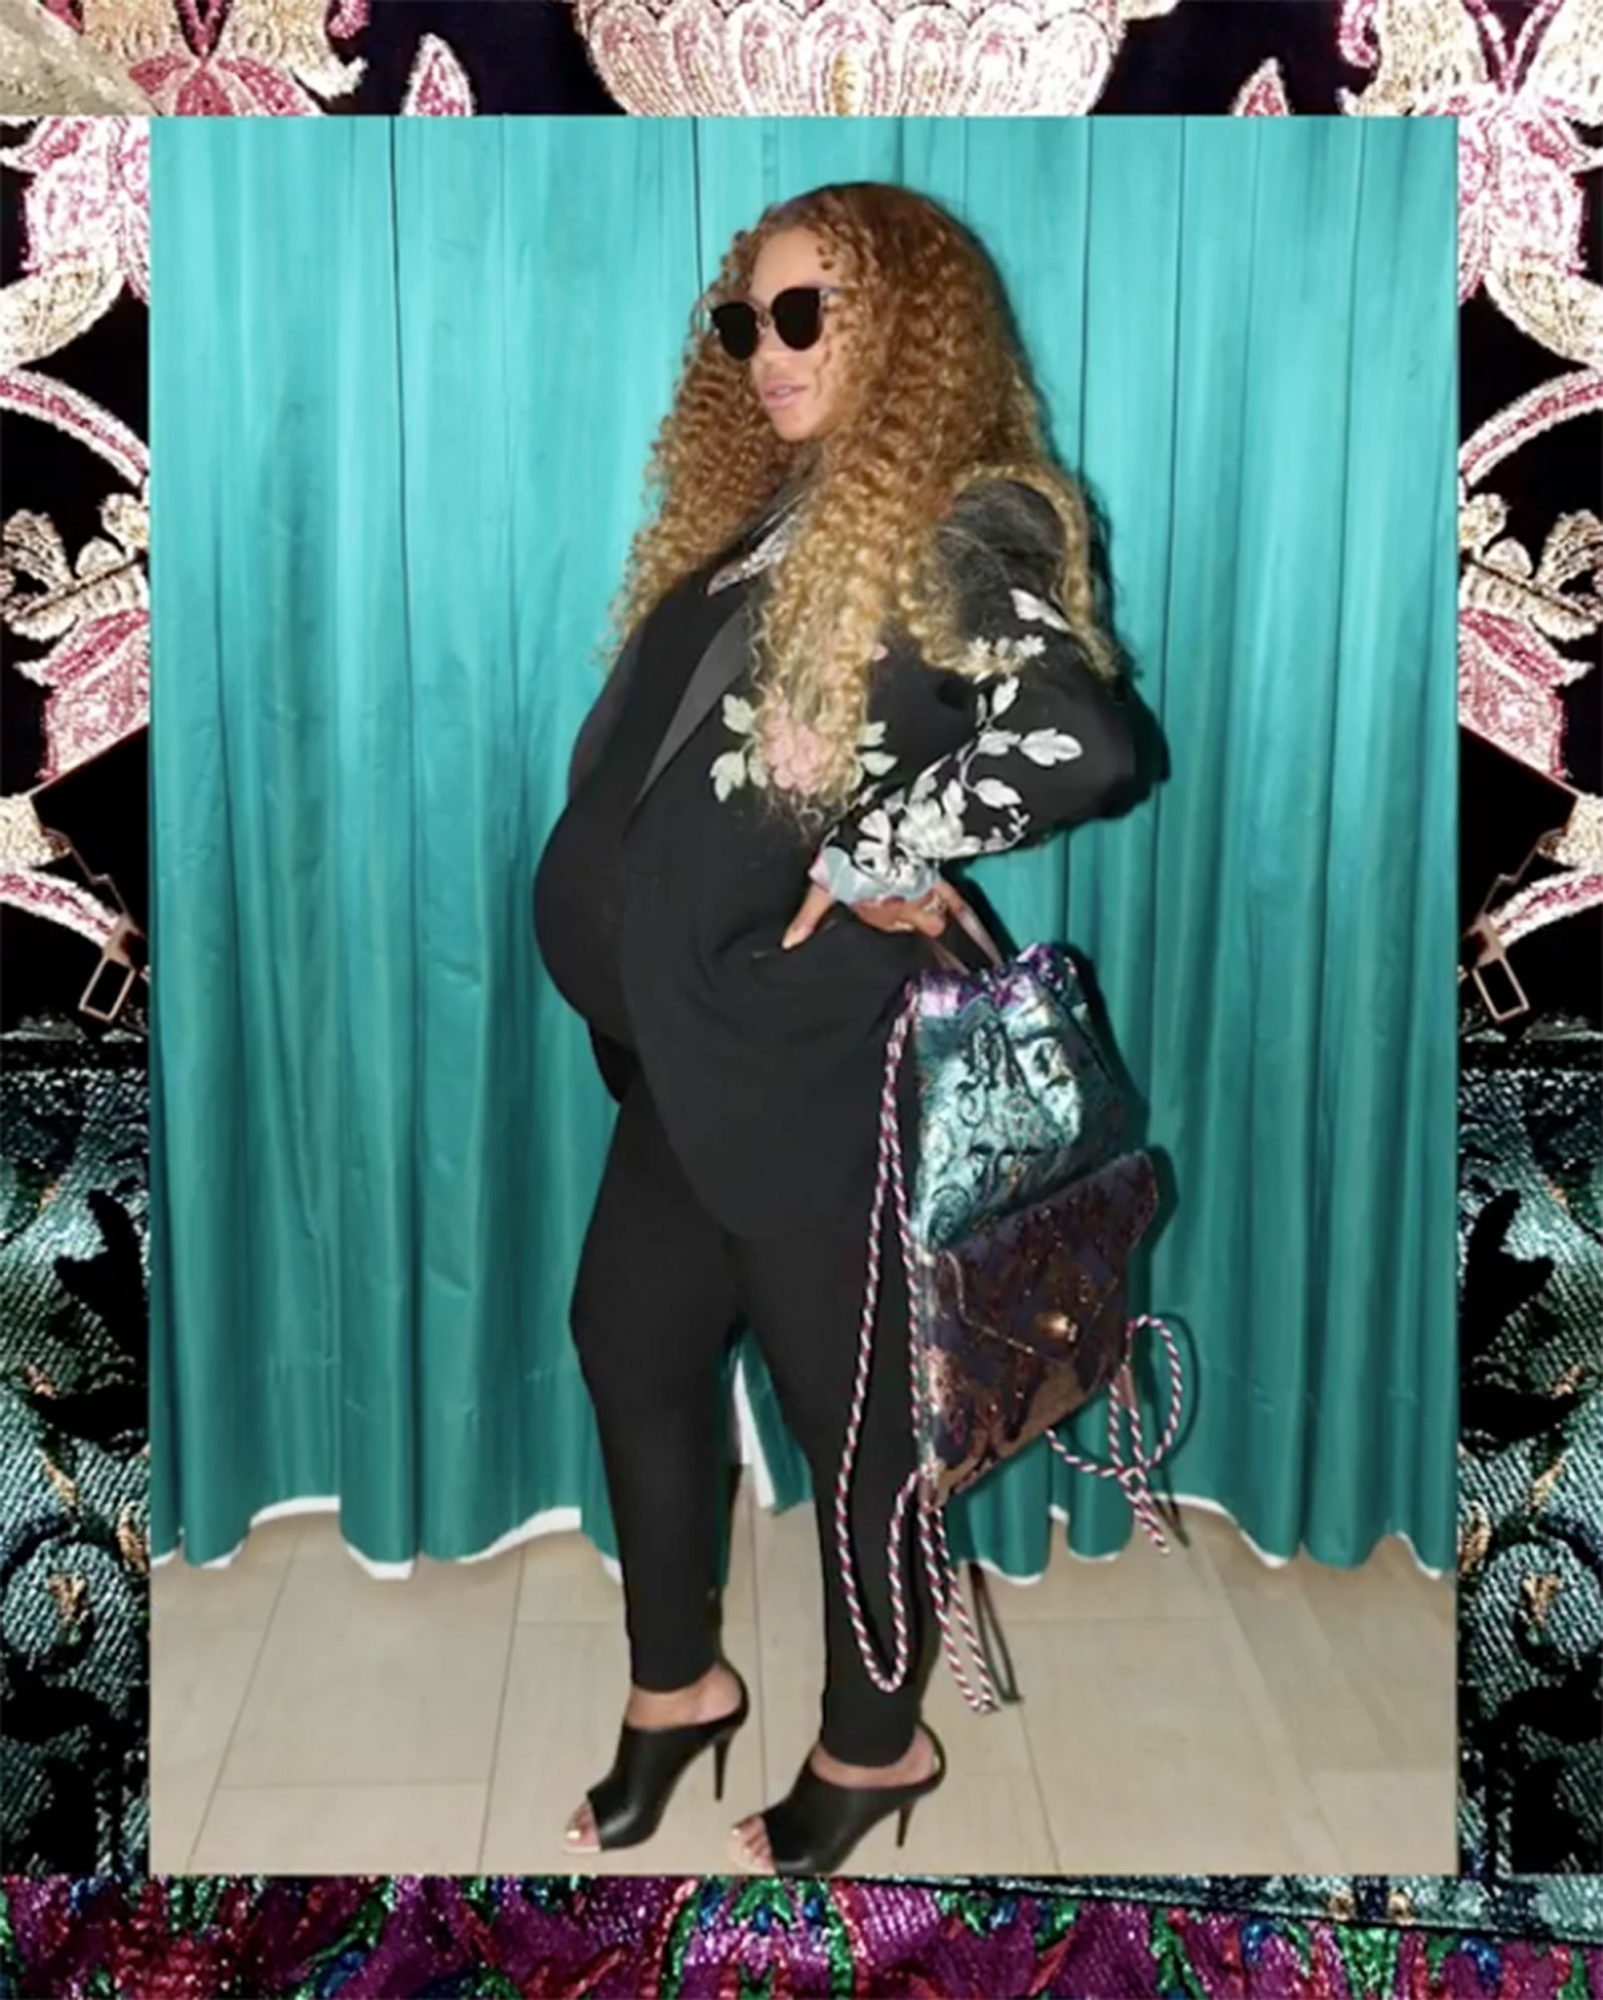 beyonce-courtside-outfit-9